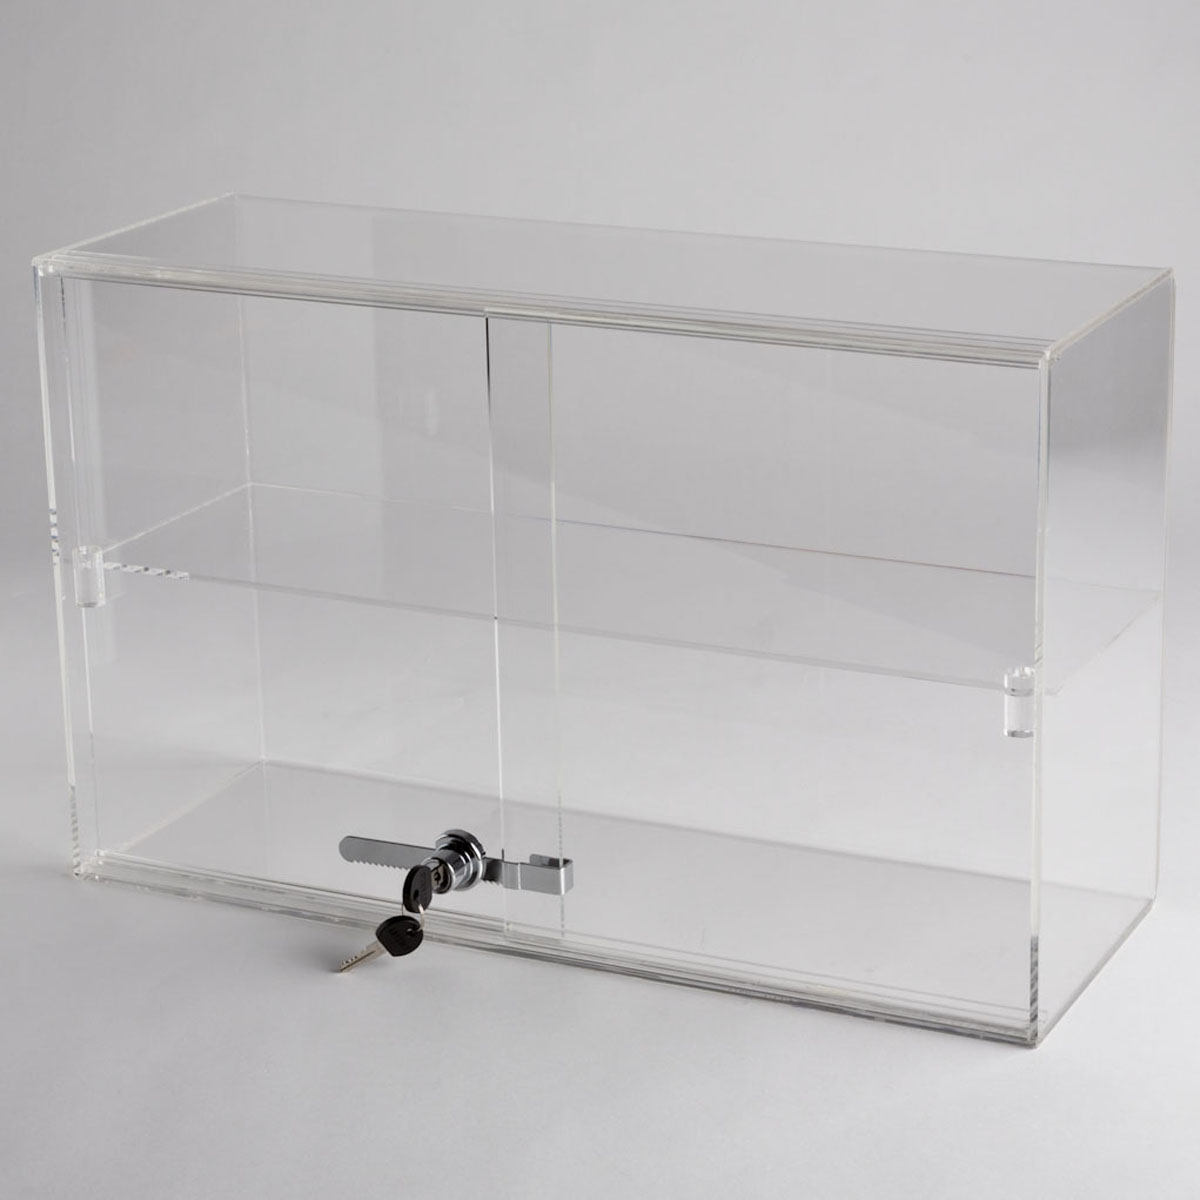 Acrylic 1 Shelf Counter Top Display Case